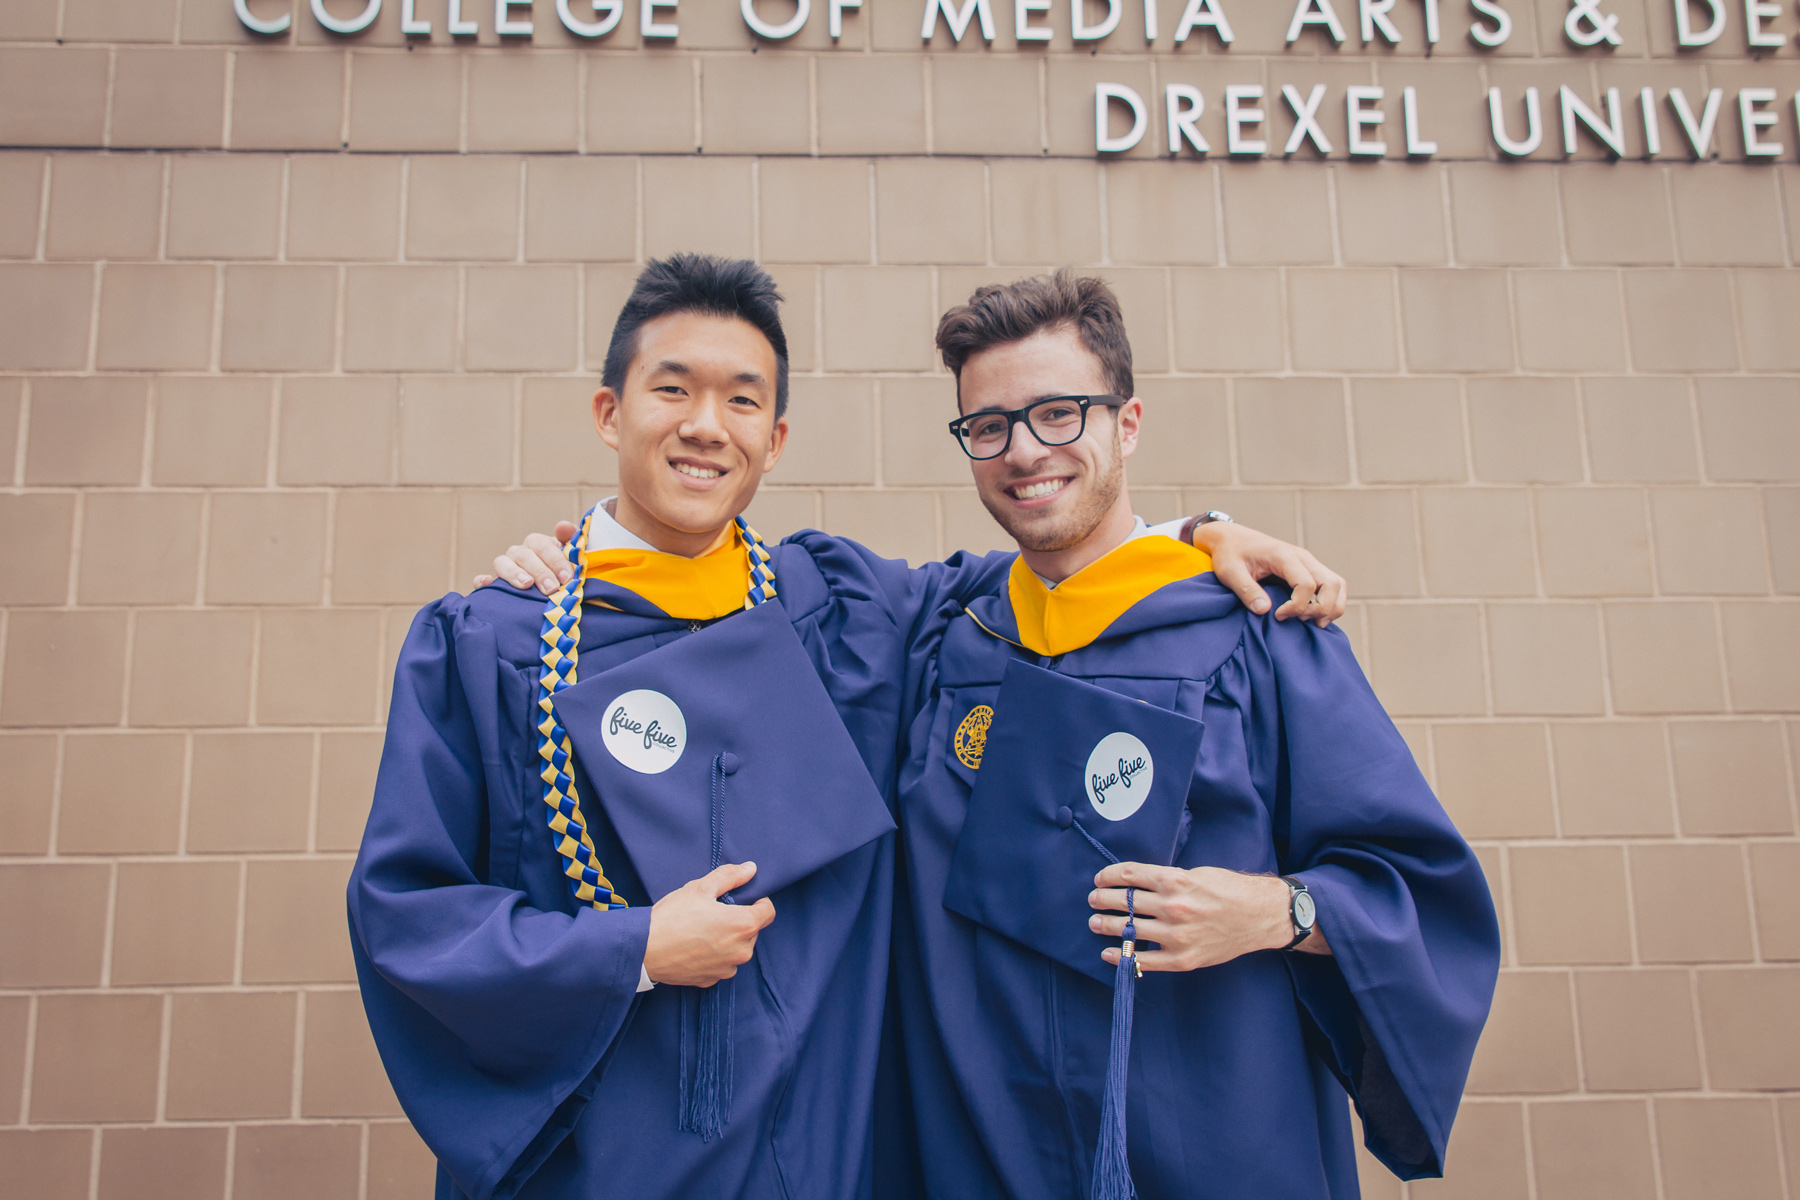 Founders Dan Leung and Max Goldberg on their graduation day